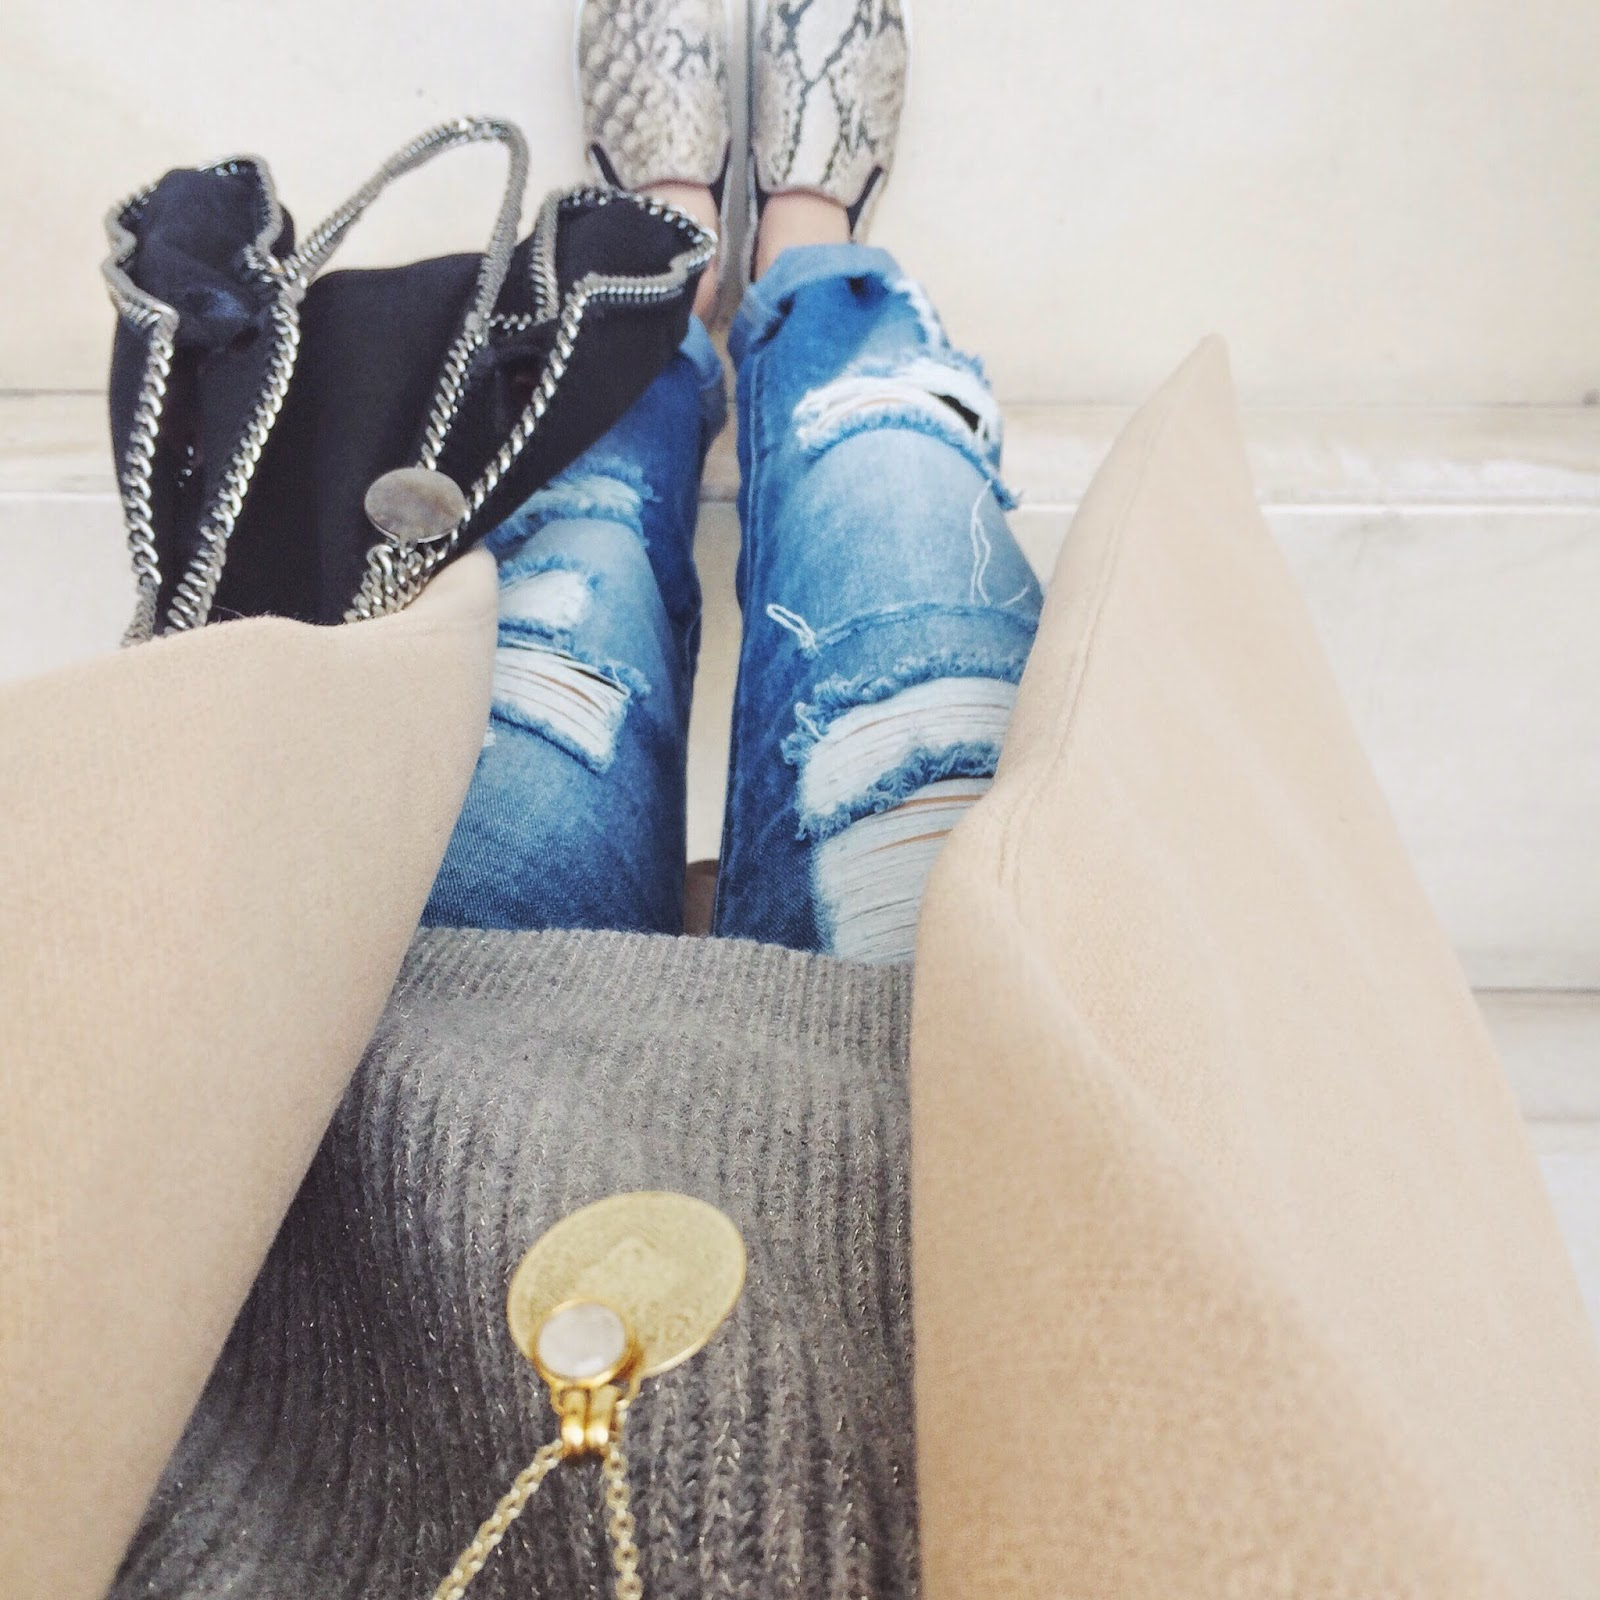 snakeskin print, slip ons, stella mccartney bag, stella mccartney falabella bag, all saints grey jumper, camel coat, miss selfridges camel coat, waterfall coat, from where i stand, fwis, streetstle